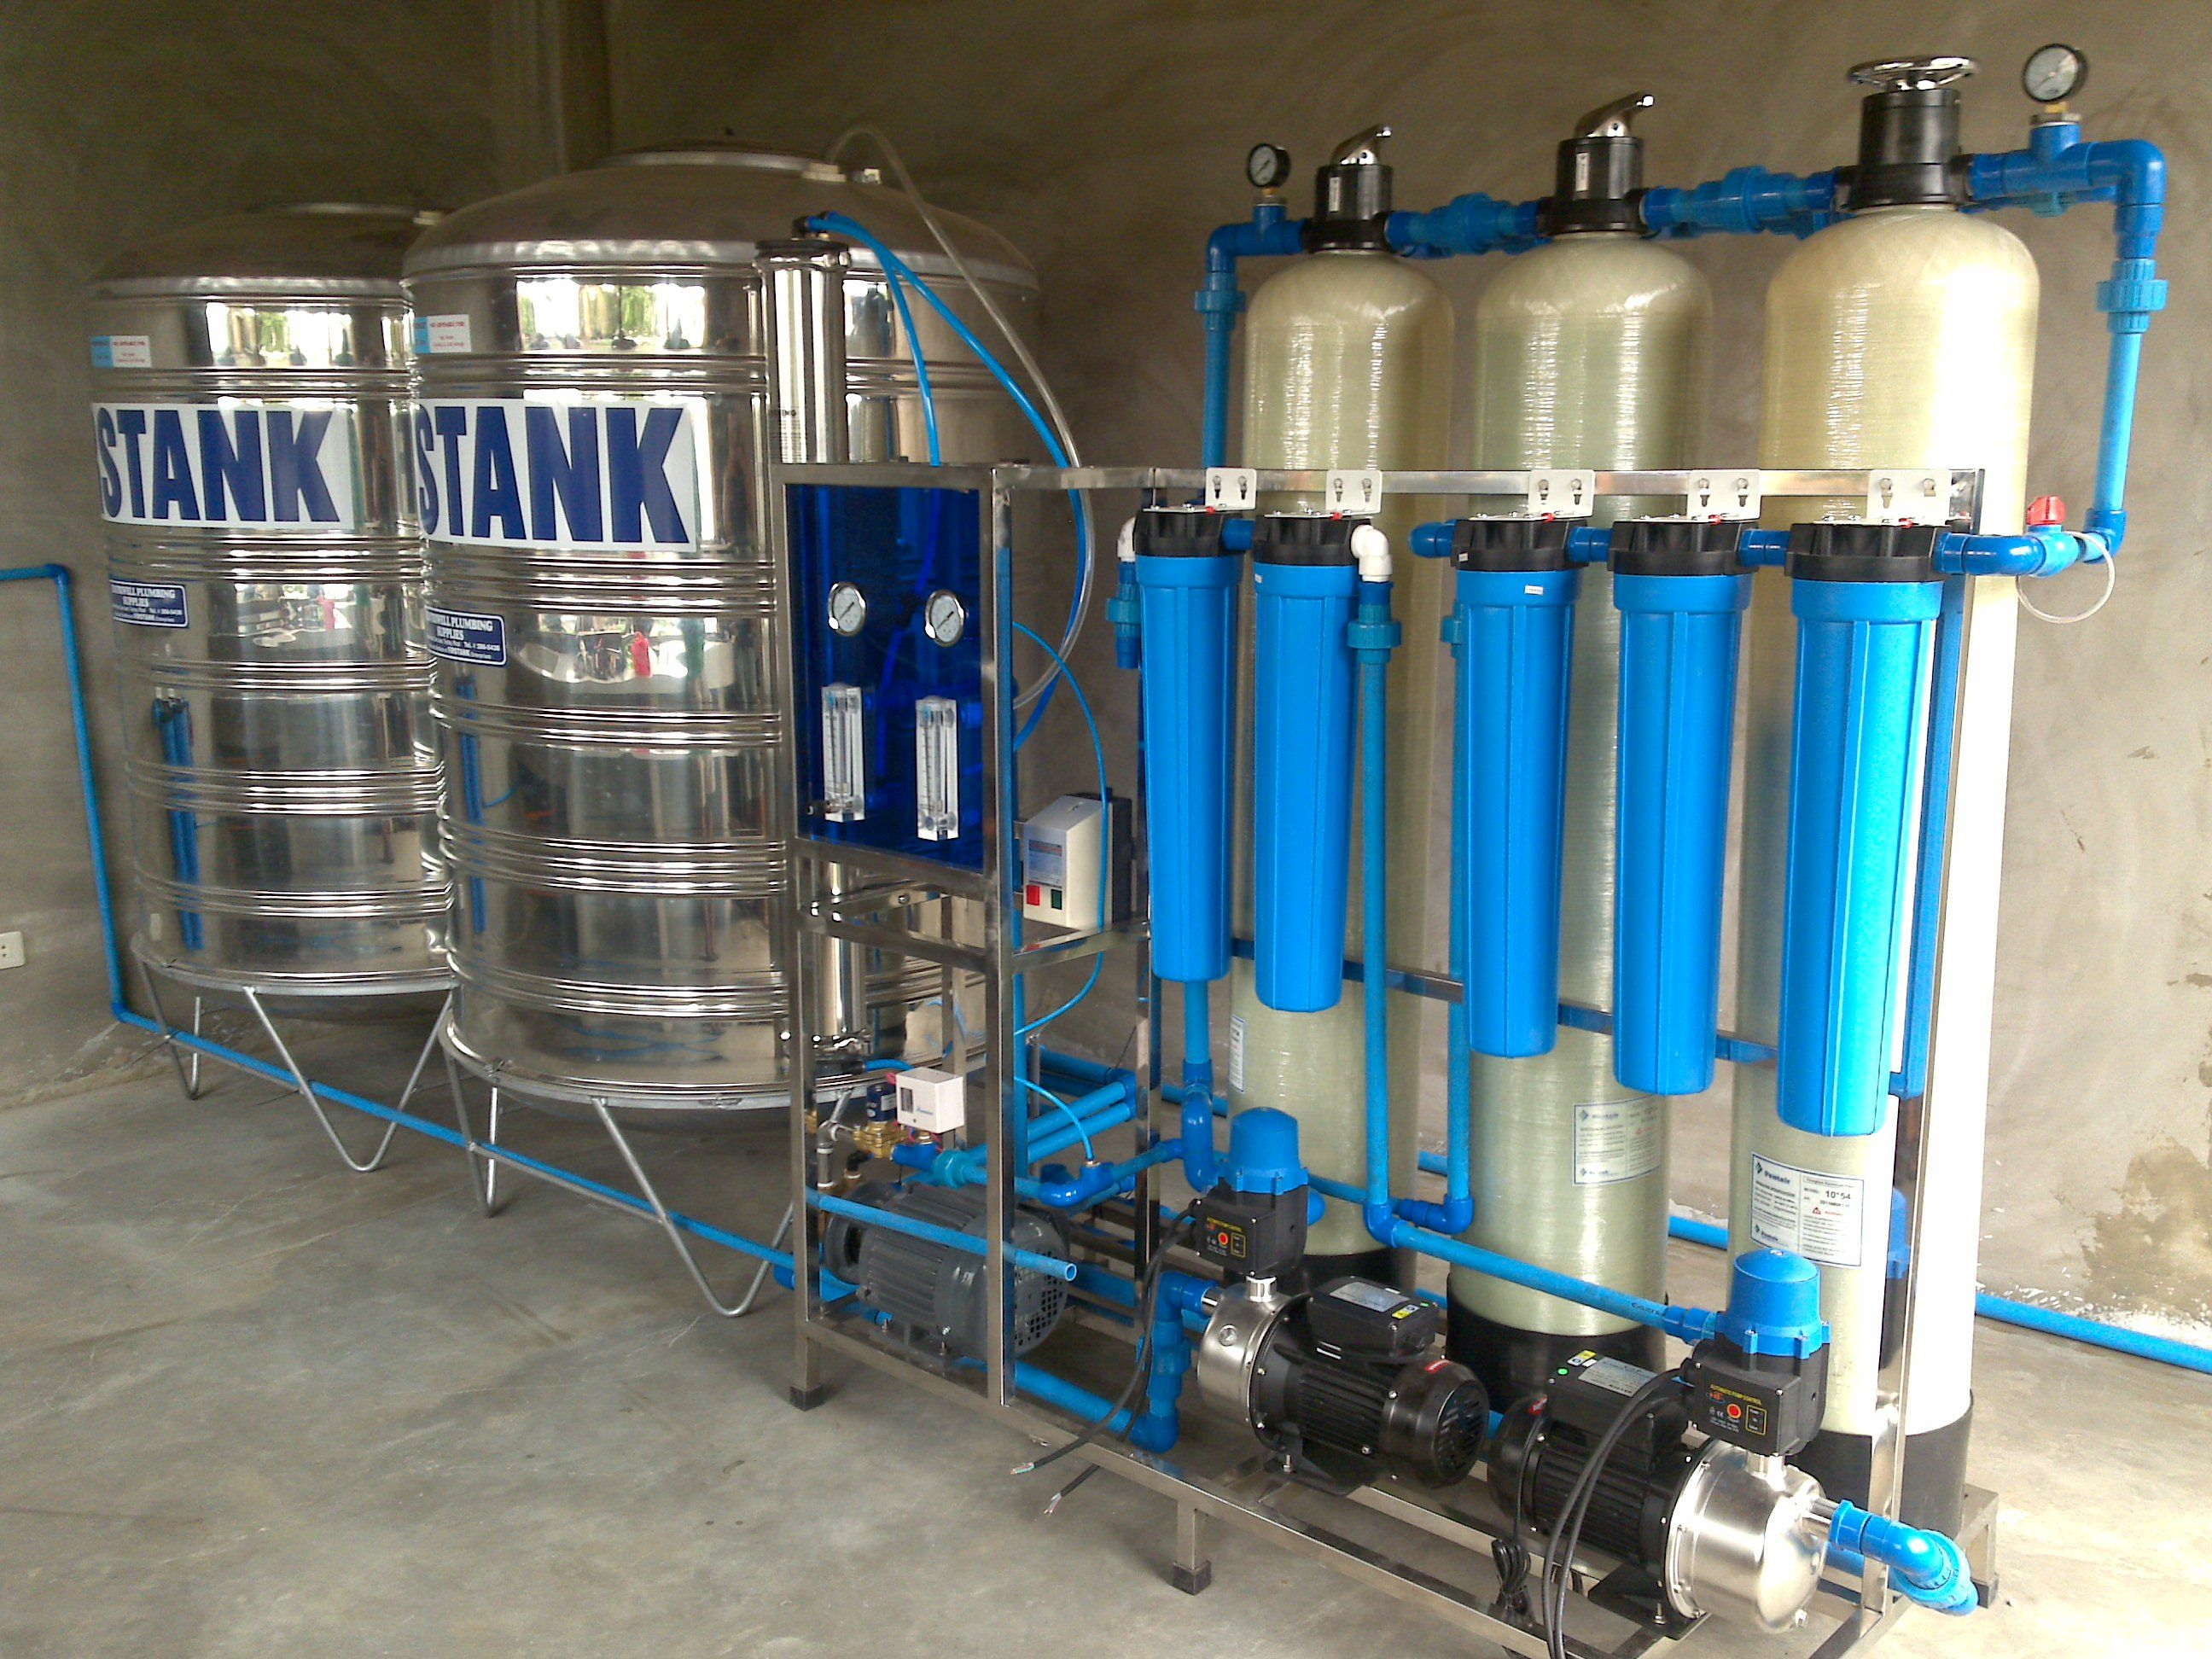 Water Refilling Station Business An Ofw S Future Water Station Station Water Storage